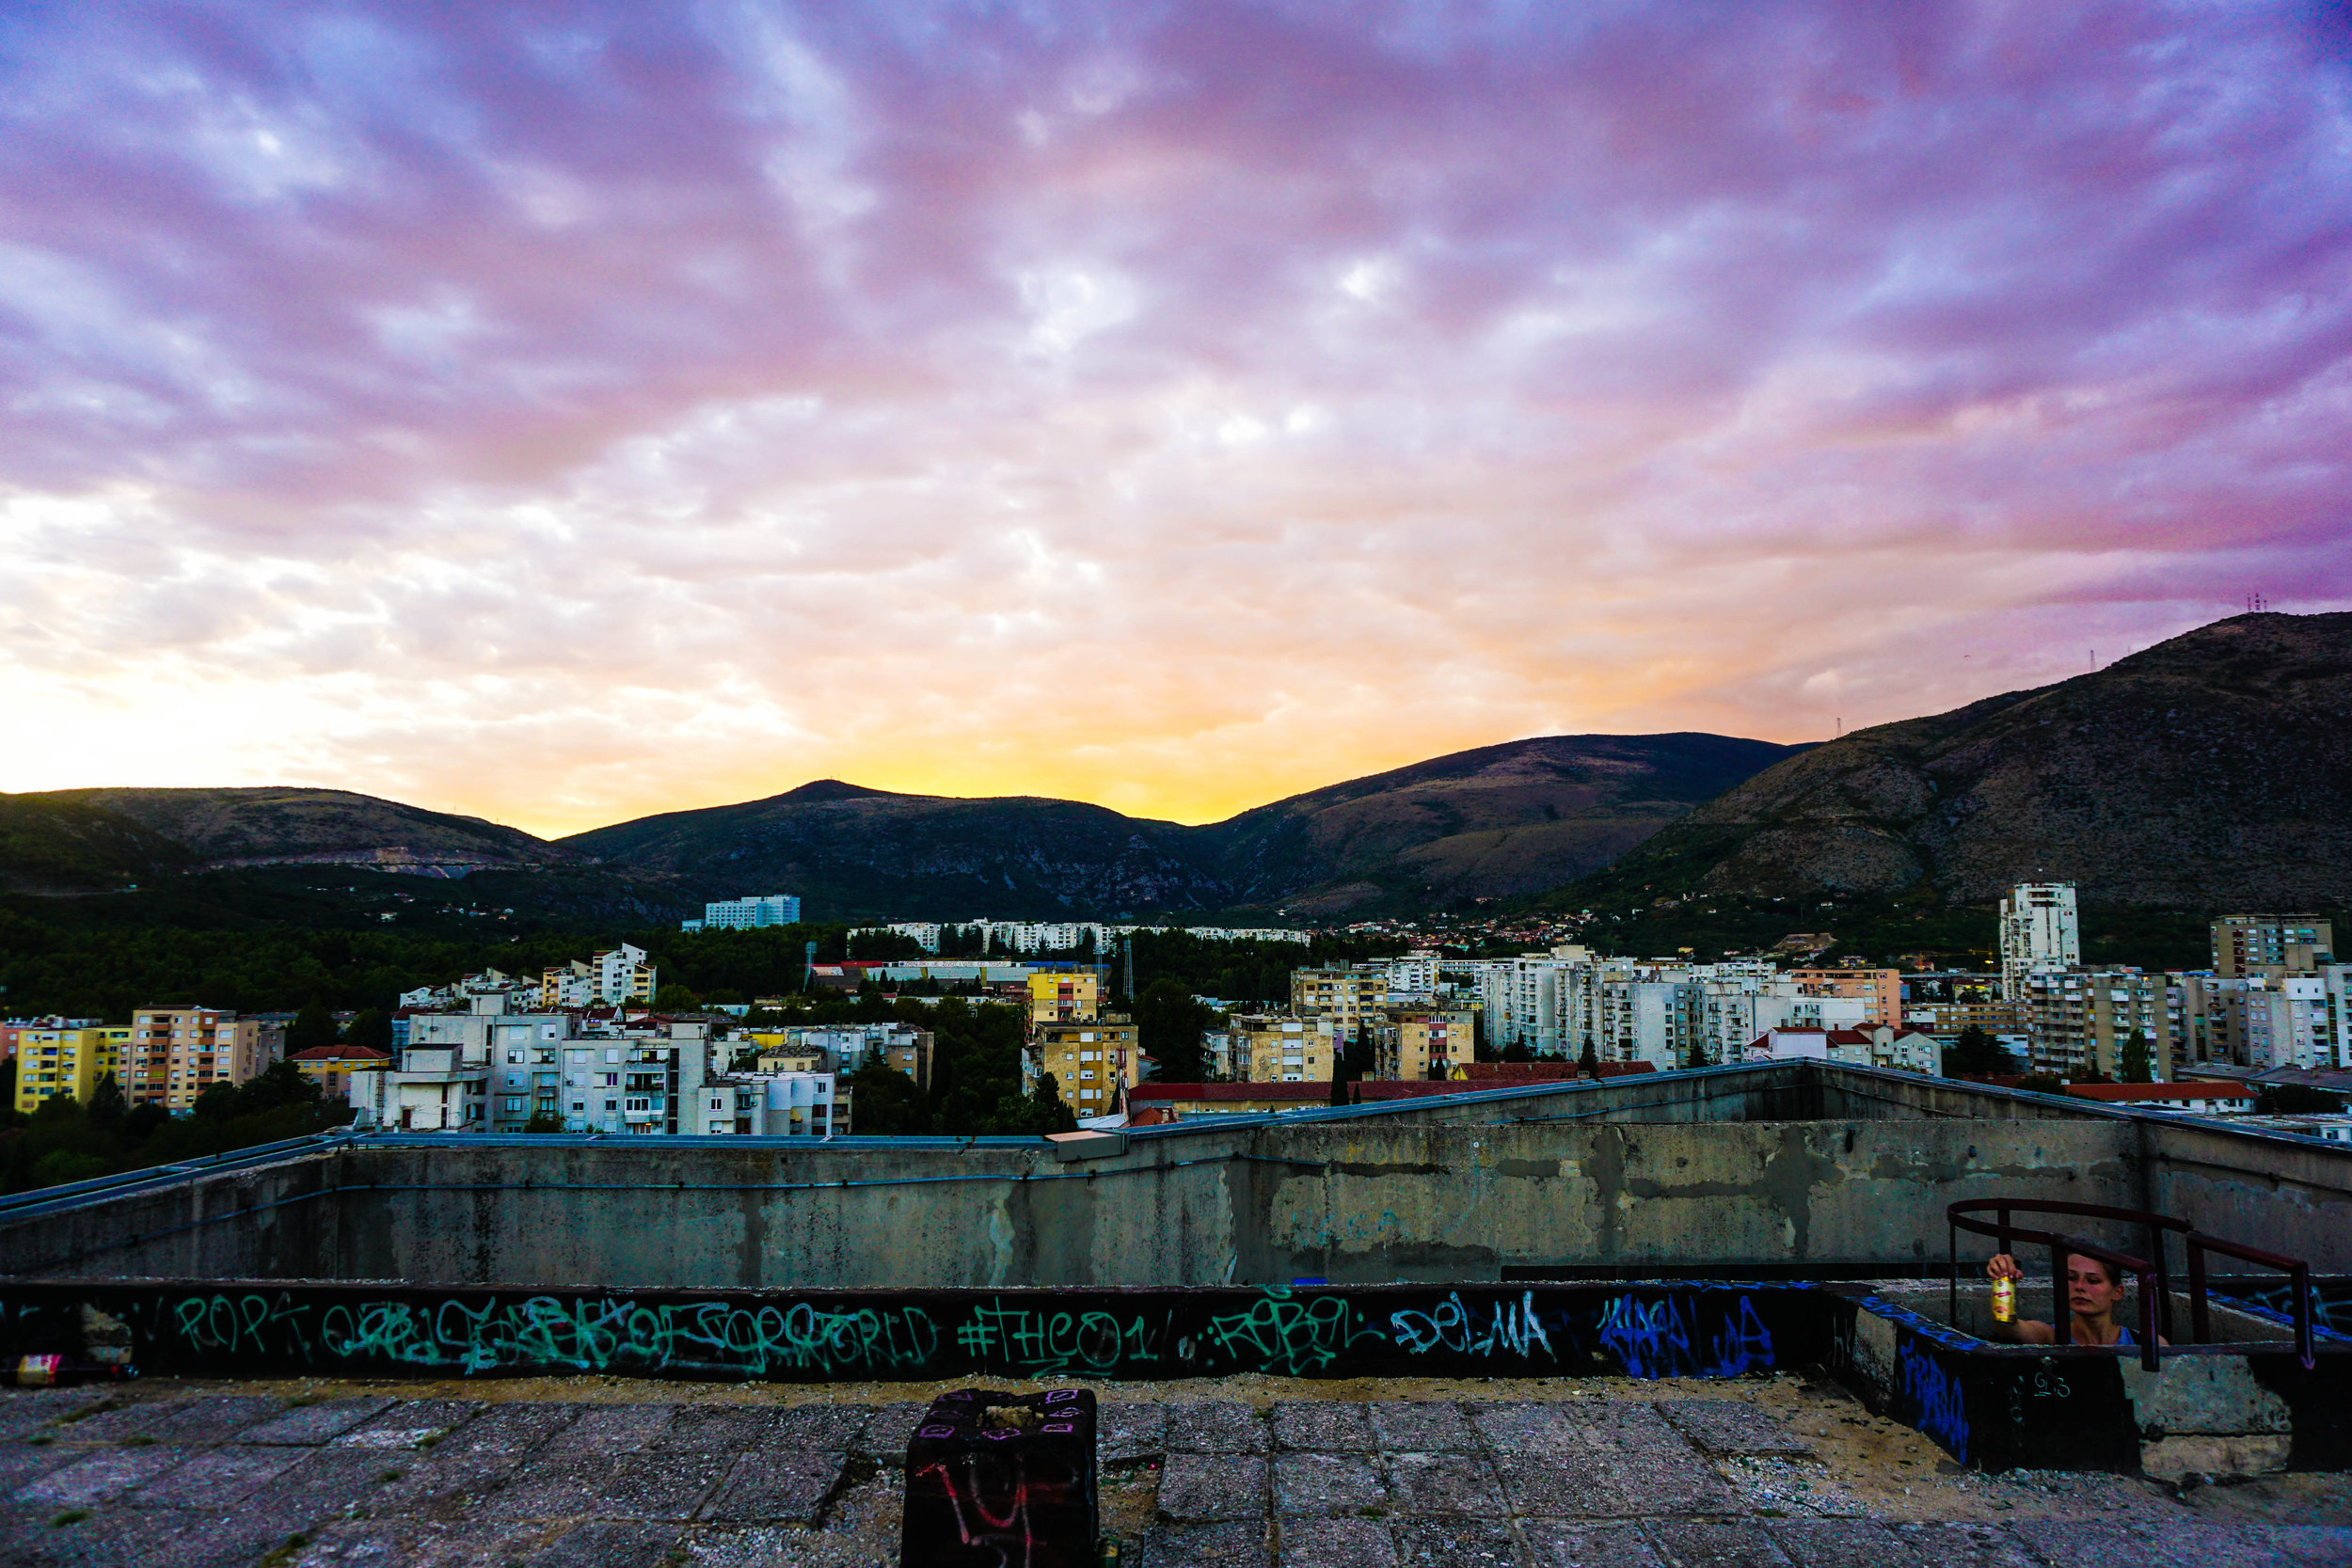 Though it is no longer the tallest building in Mostar, it still provides on of the best 360-degree views of the city and serves as a prime drinking spot for teens and tourist alike.  (This was a photojournal essay entry created for  World Nomad's  photography contest.)  Thanks for reading!  xx  - Steph